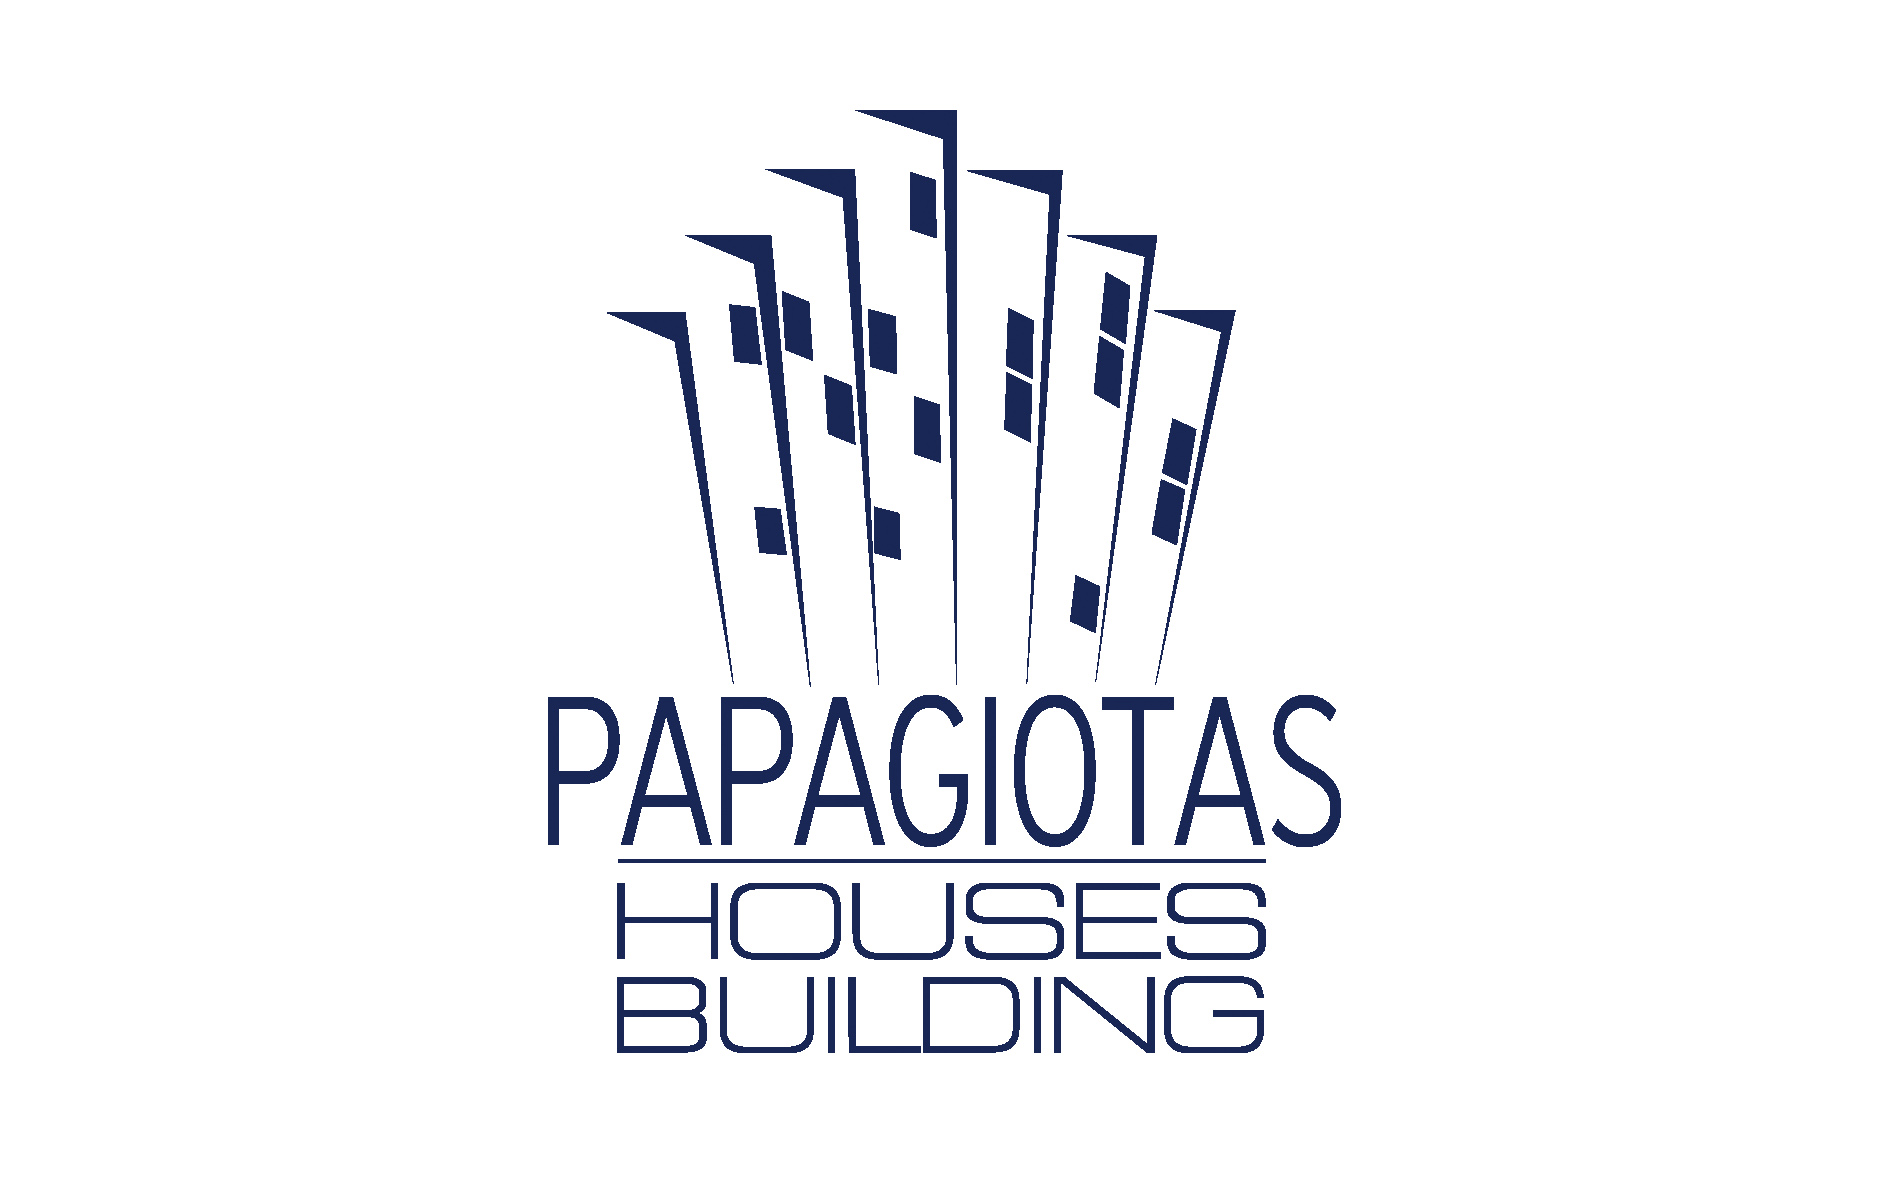 Papagiotas houses building